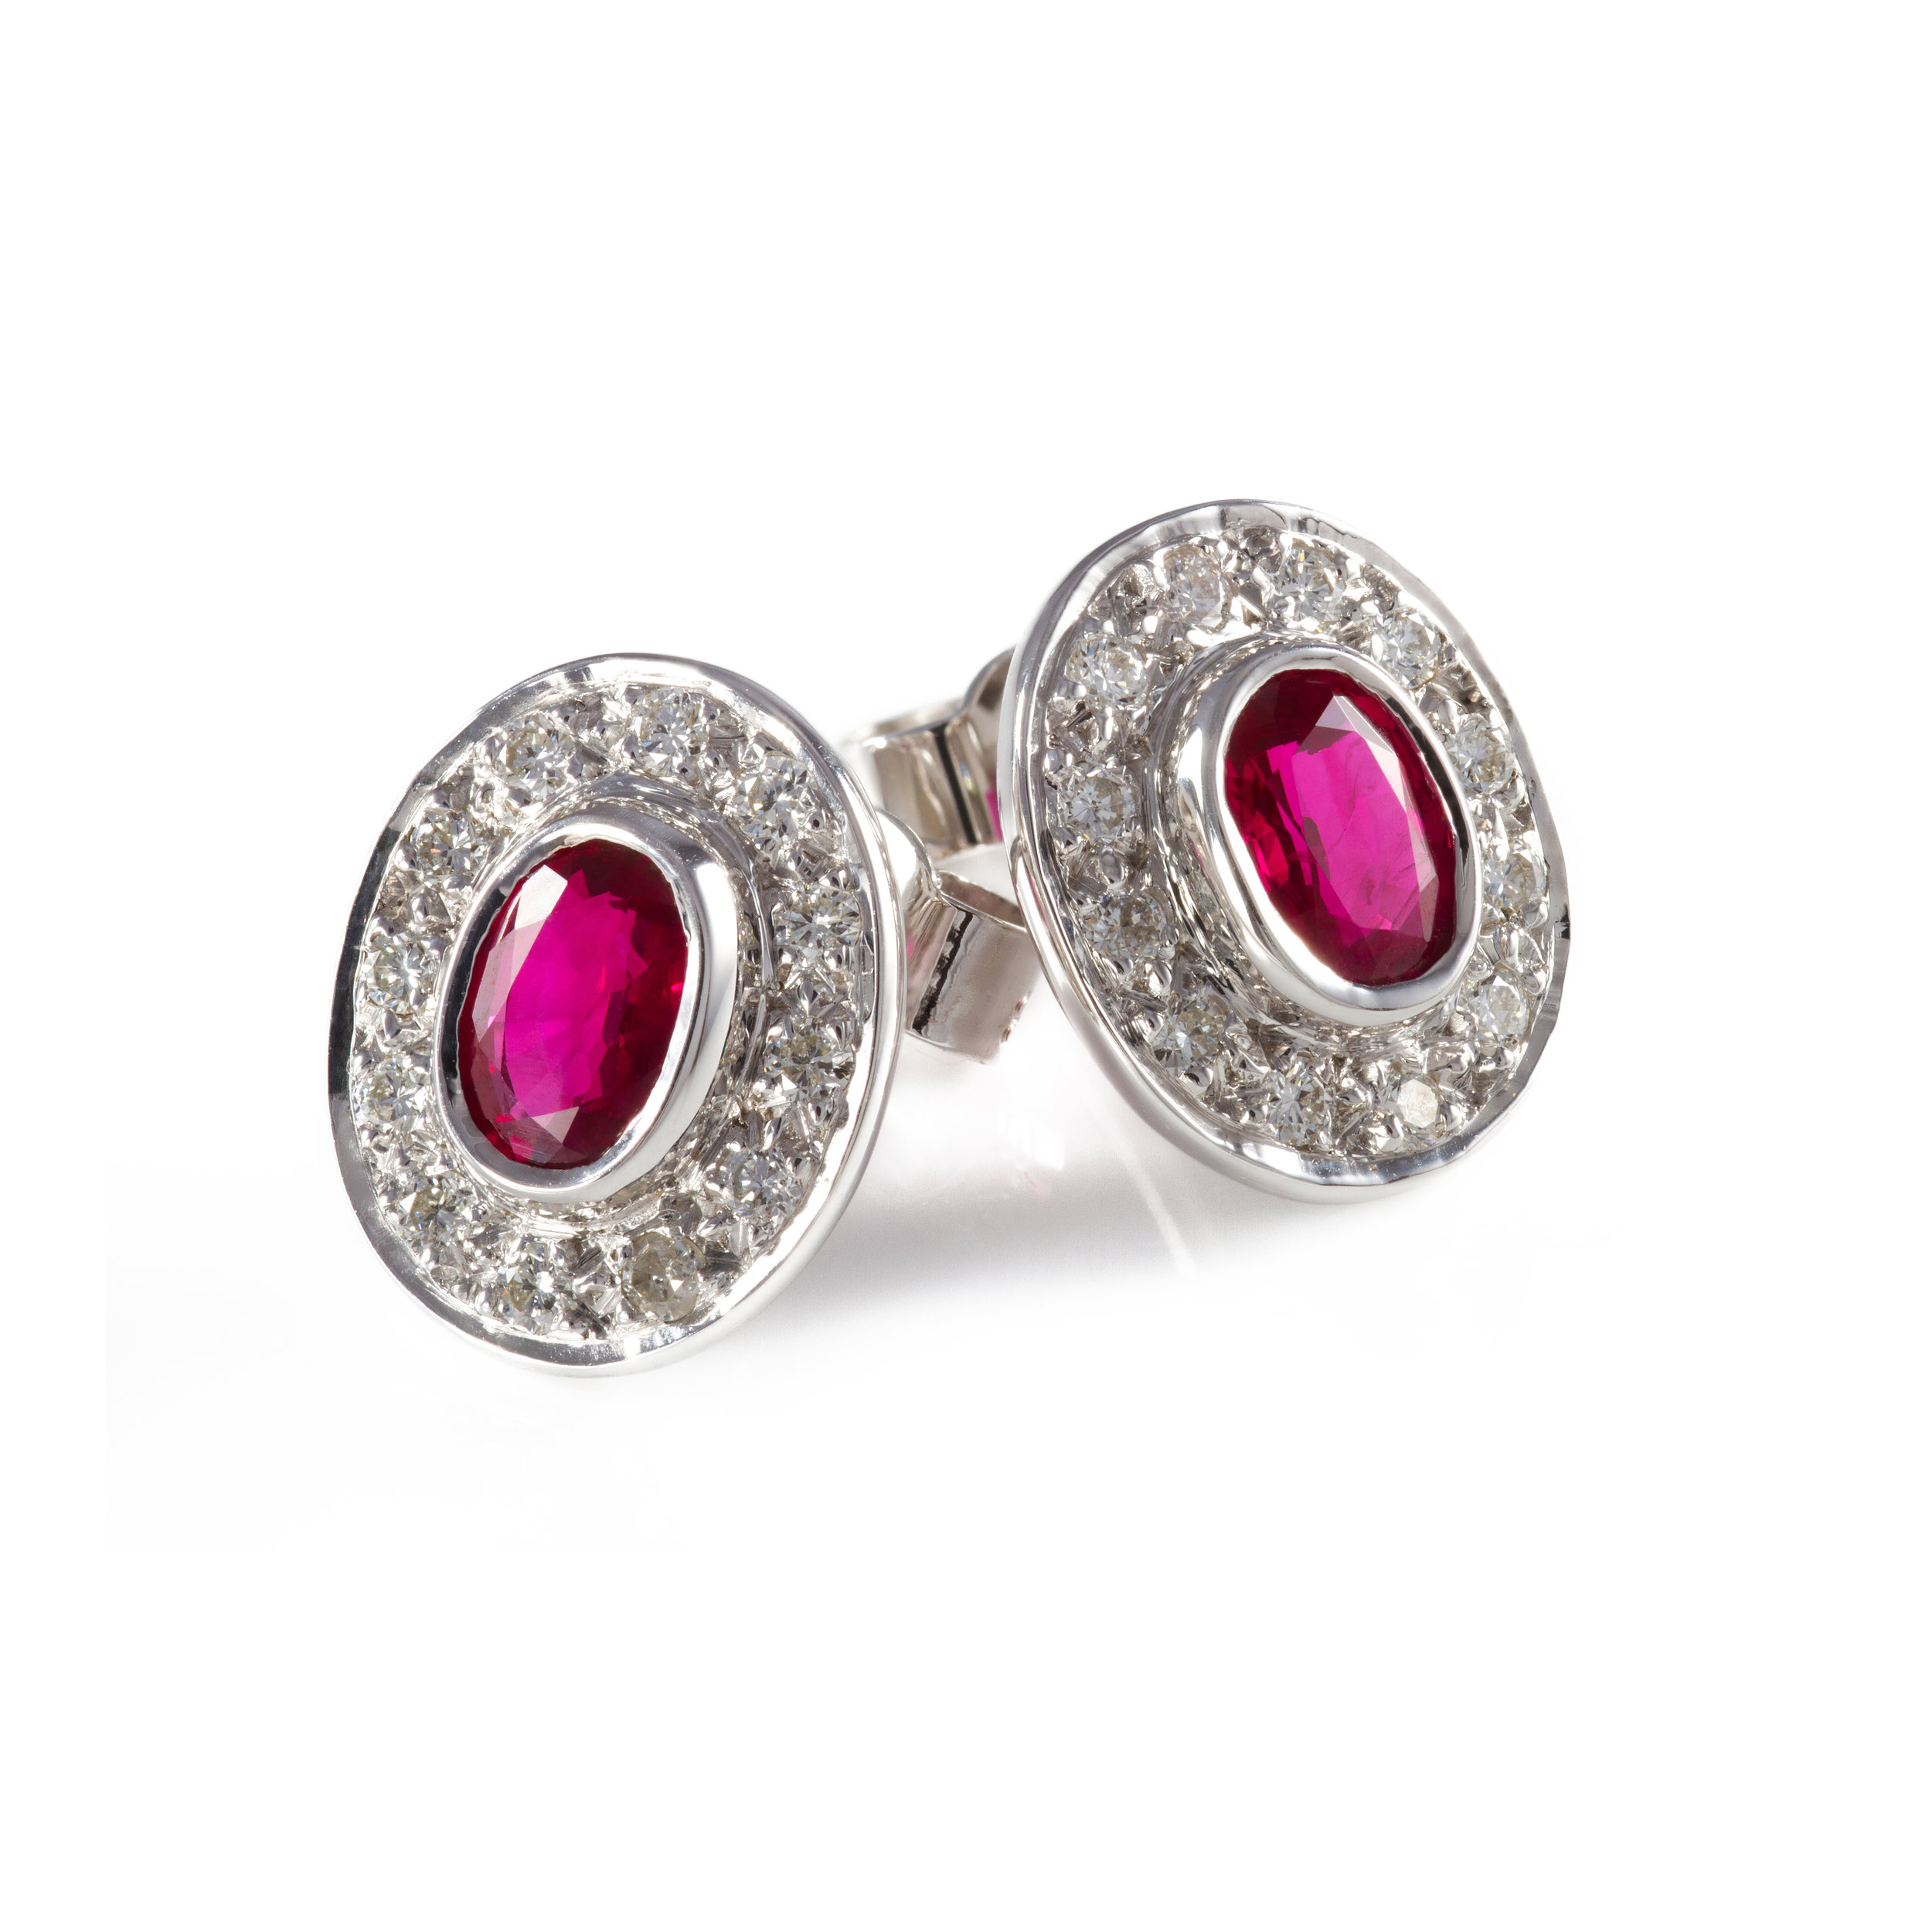 Bespoke ruby and diamond earring commission